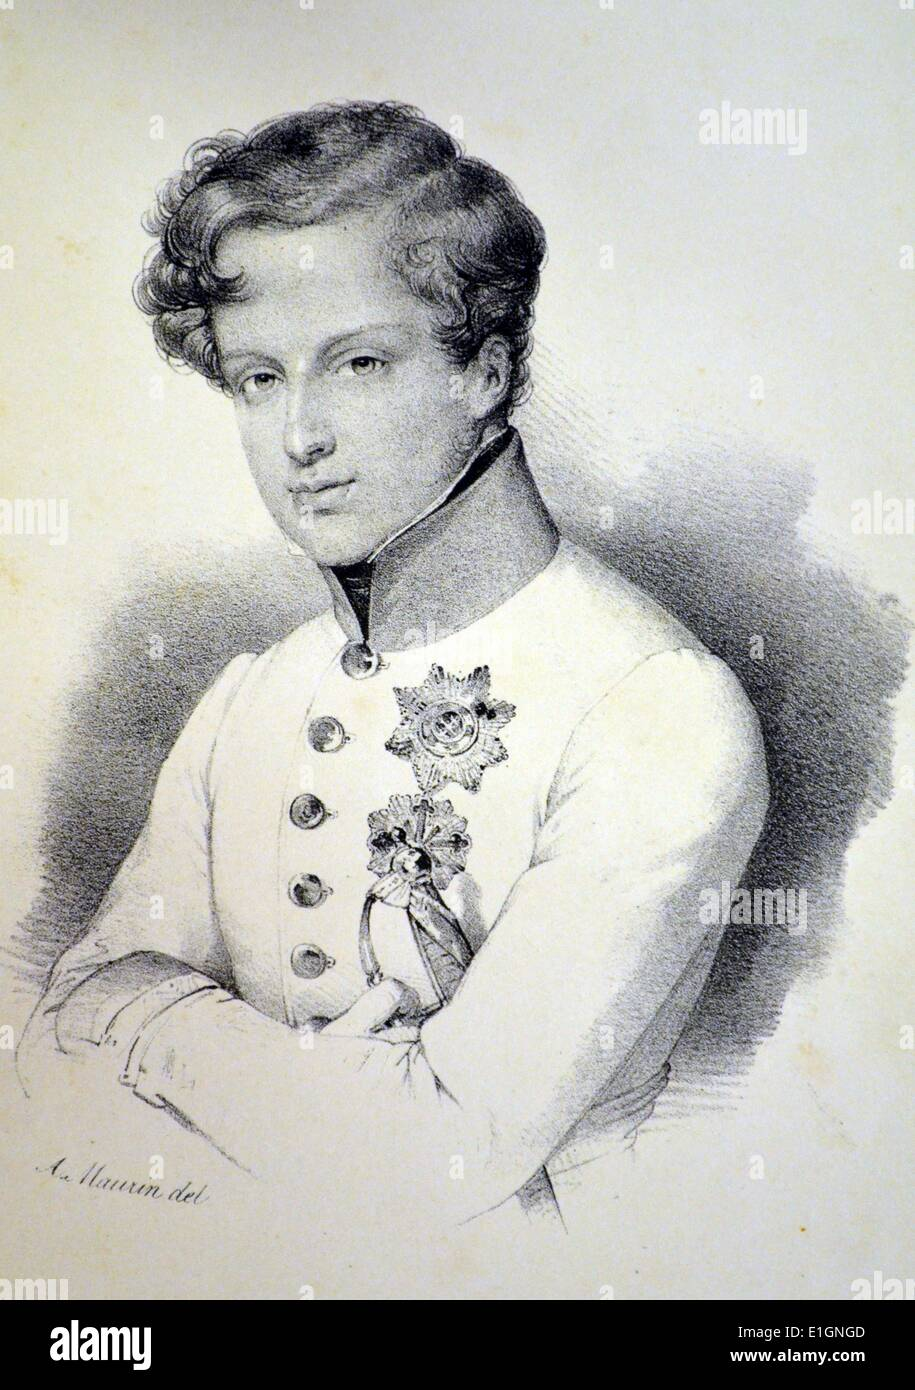 Napoleon II, Duke of Reichstadt, also known as the King of Rome (1811-1832), son of Napoleon I and Marie Louise Stock Photo